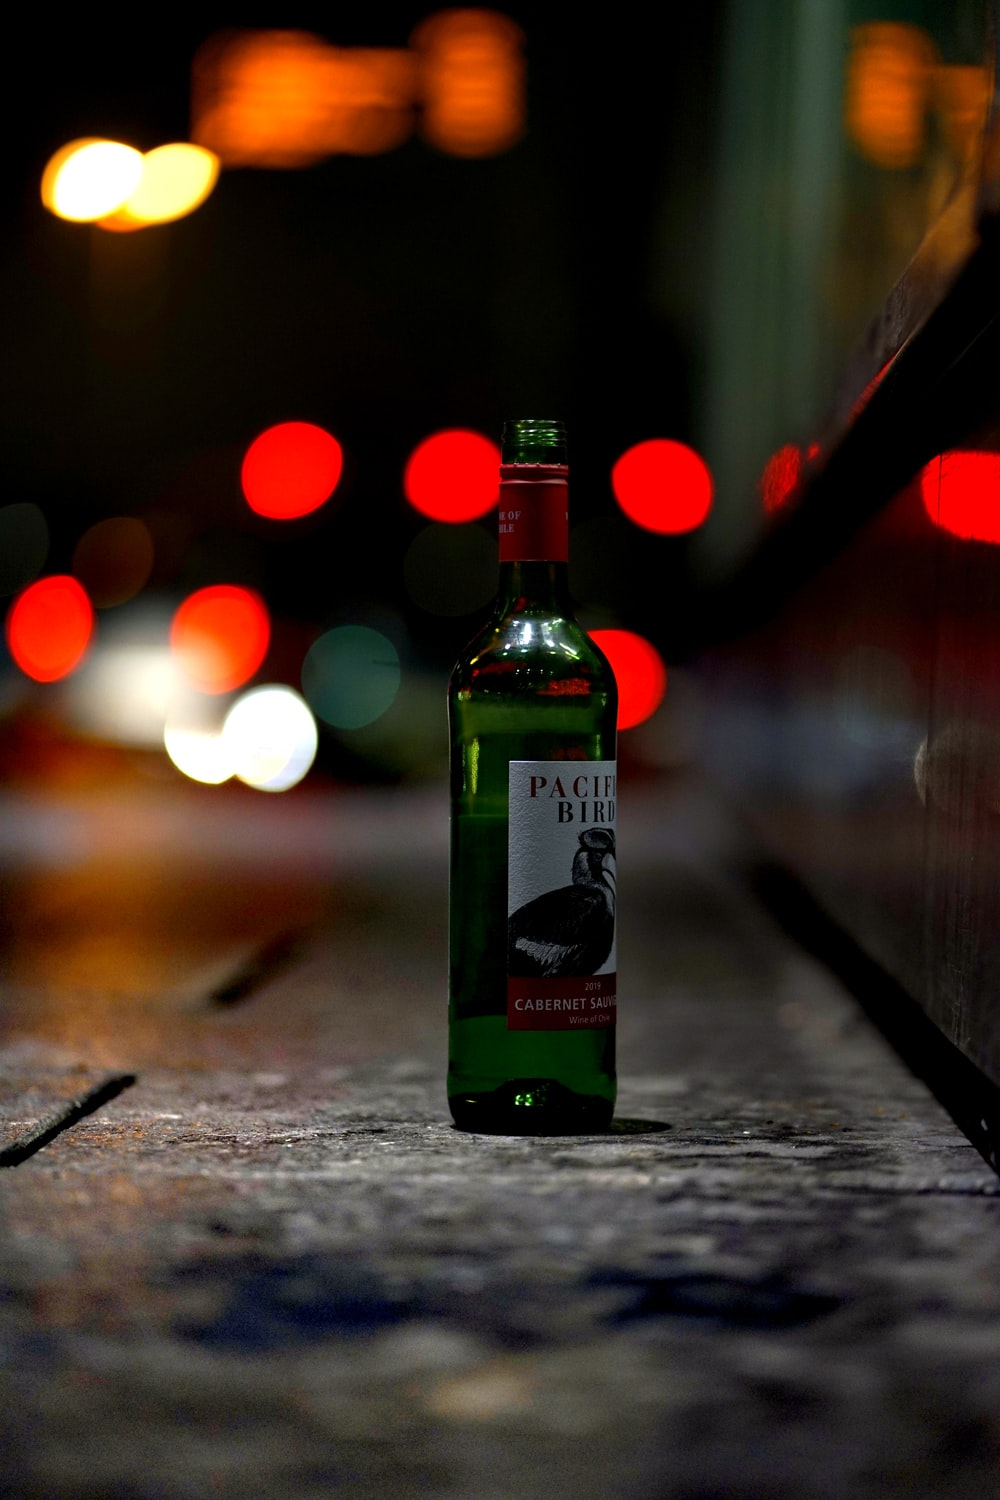 green glass bottle on brown wooden table